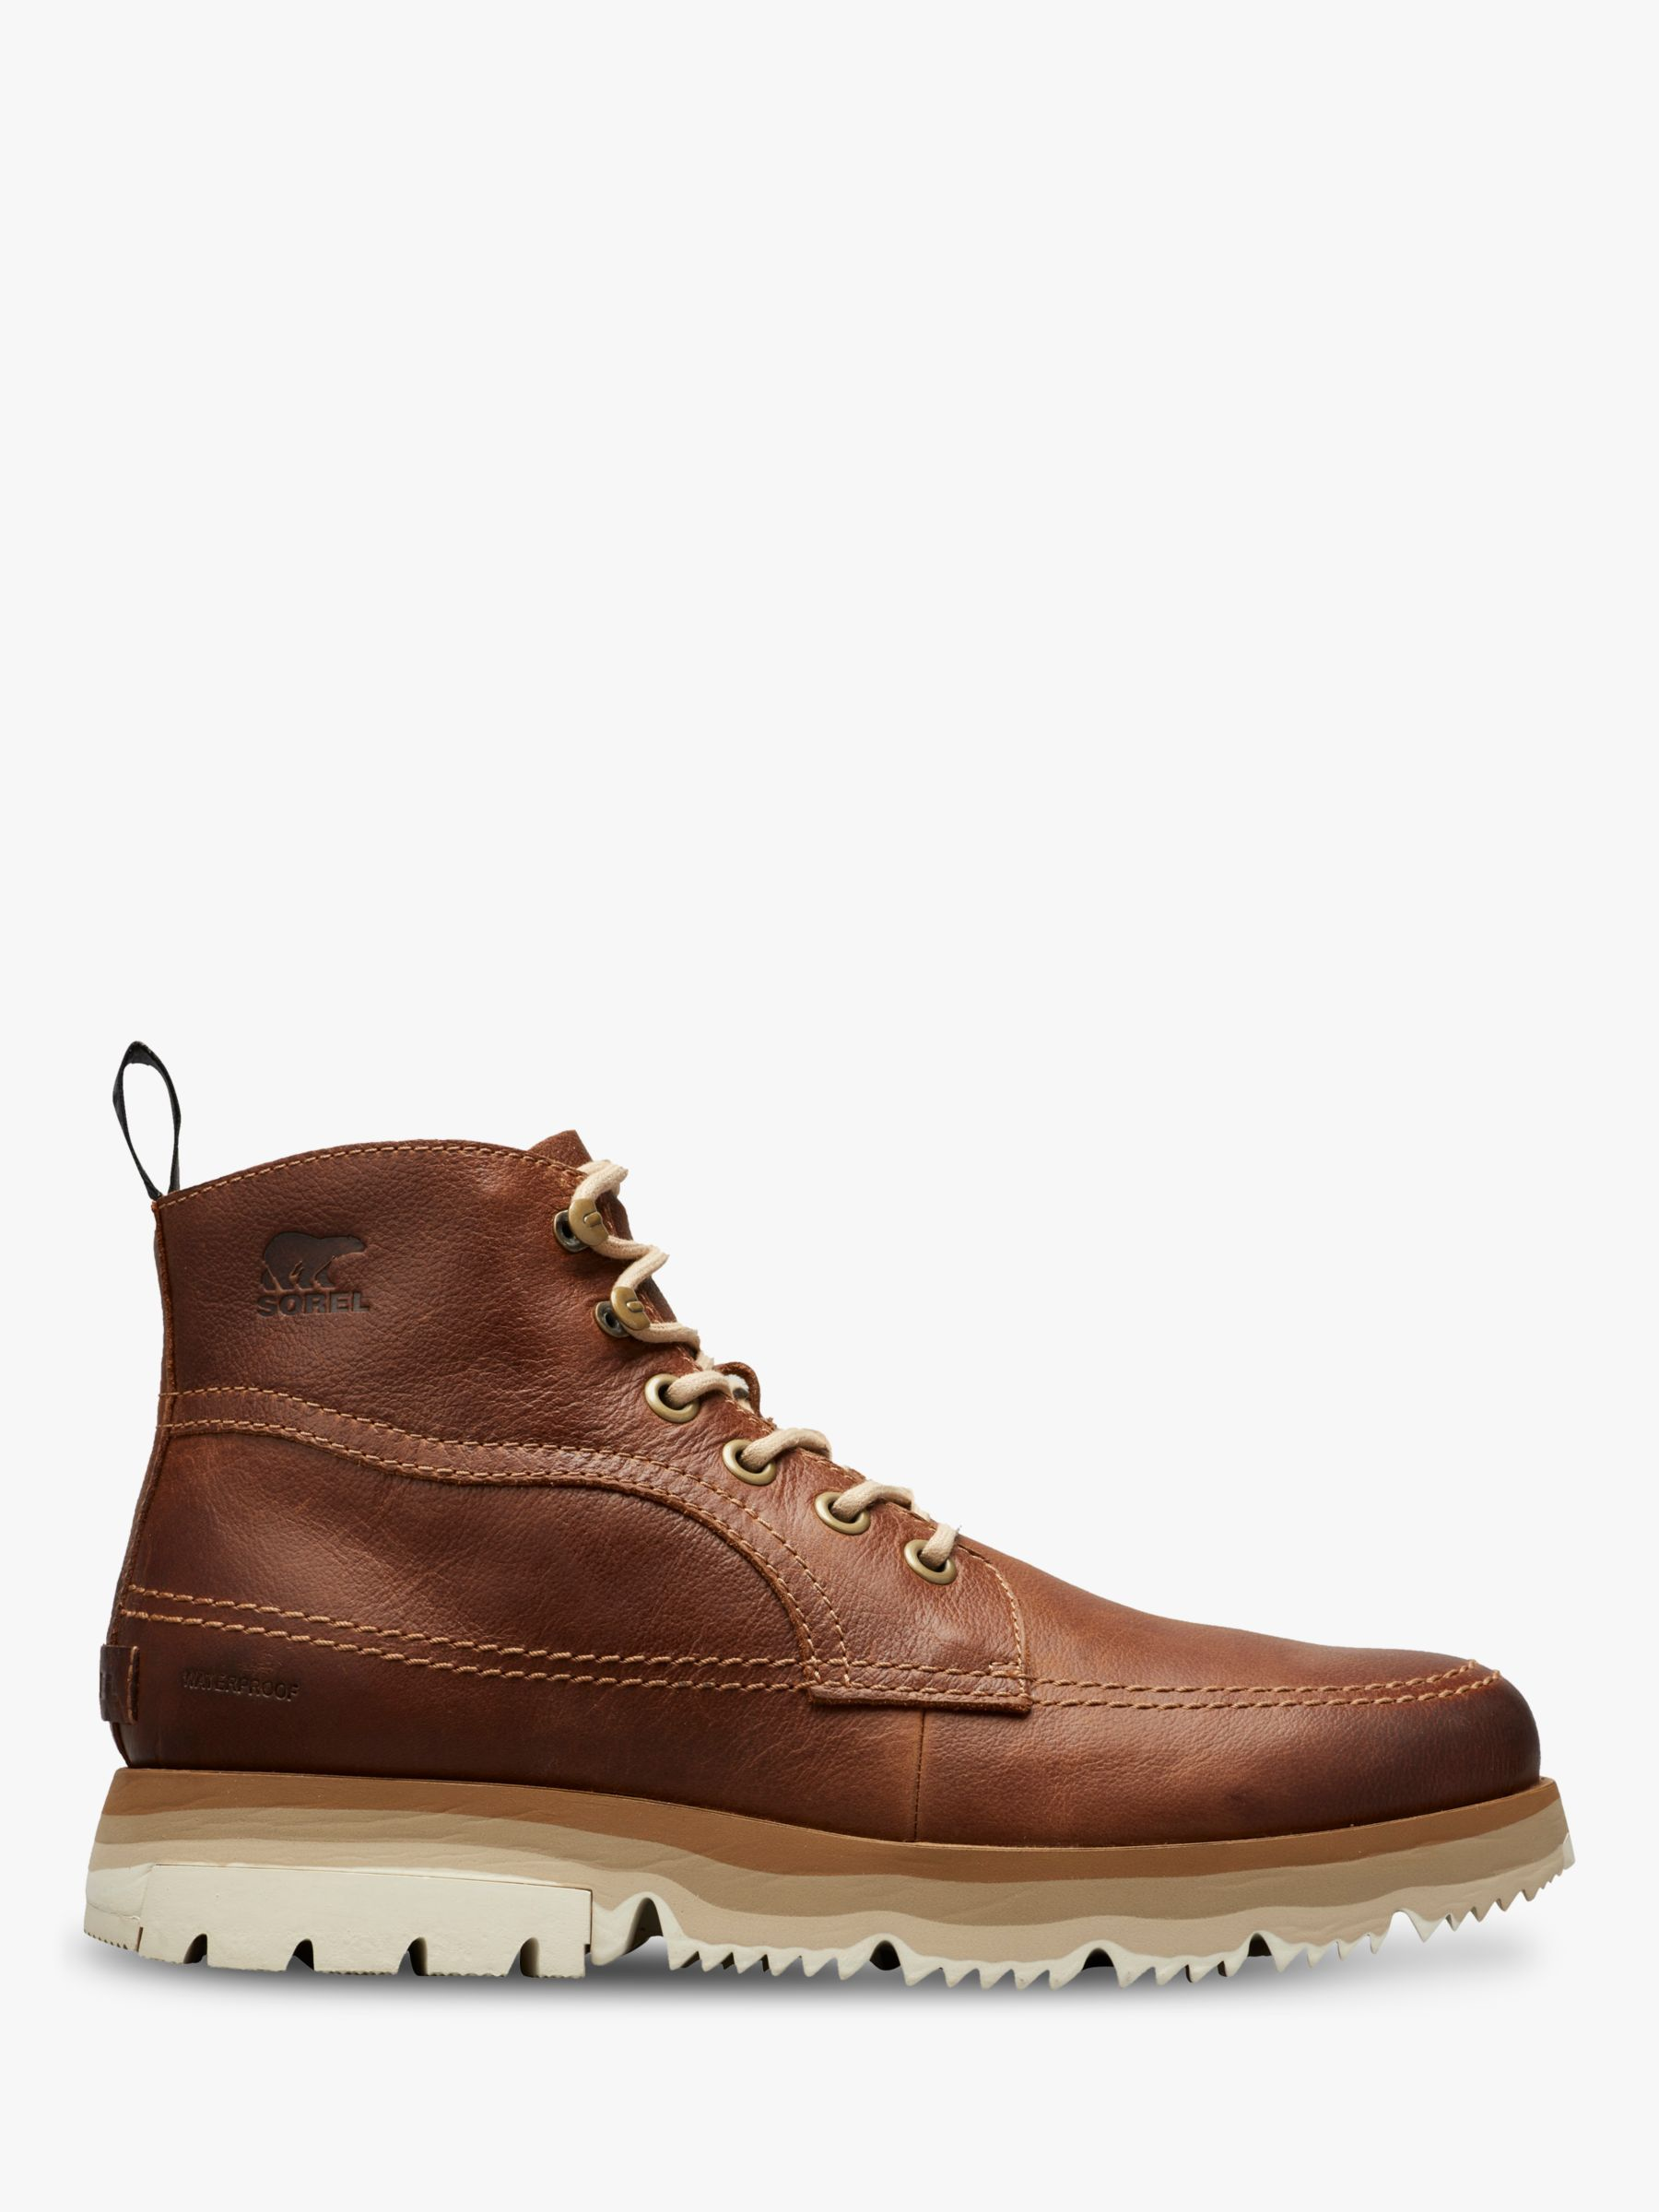 Sorel SOREL Atlis Leather Chukka Boots, Elk